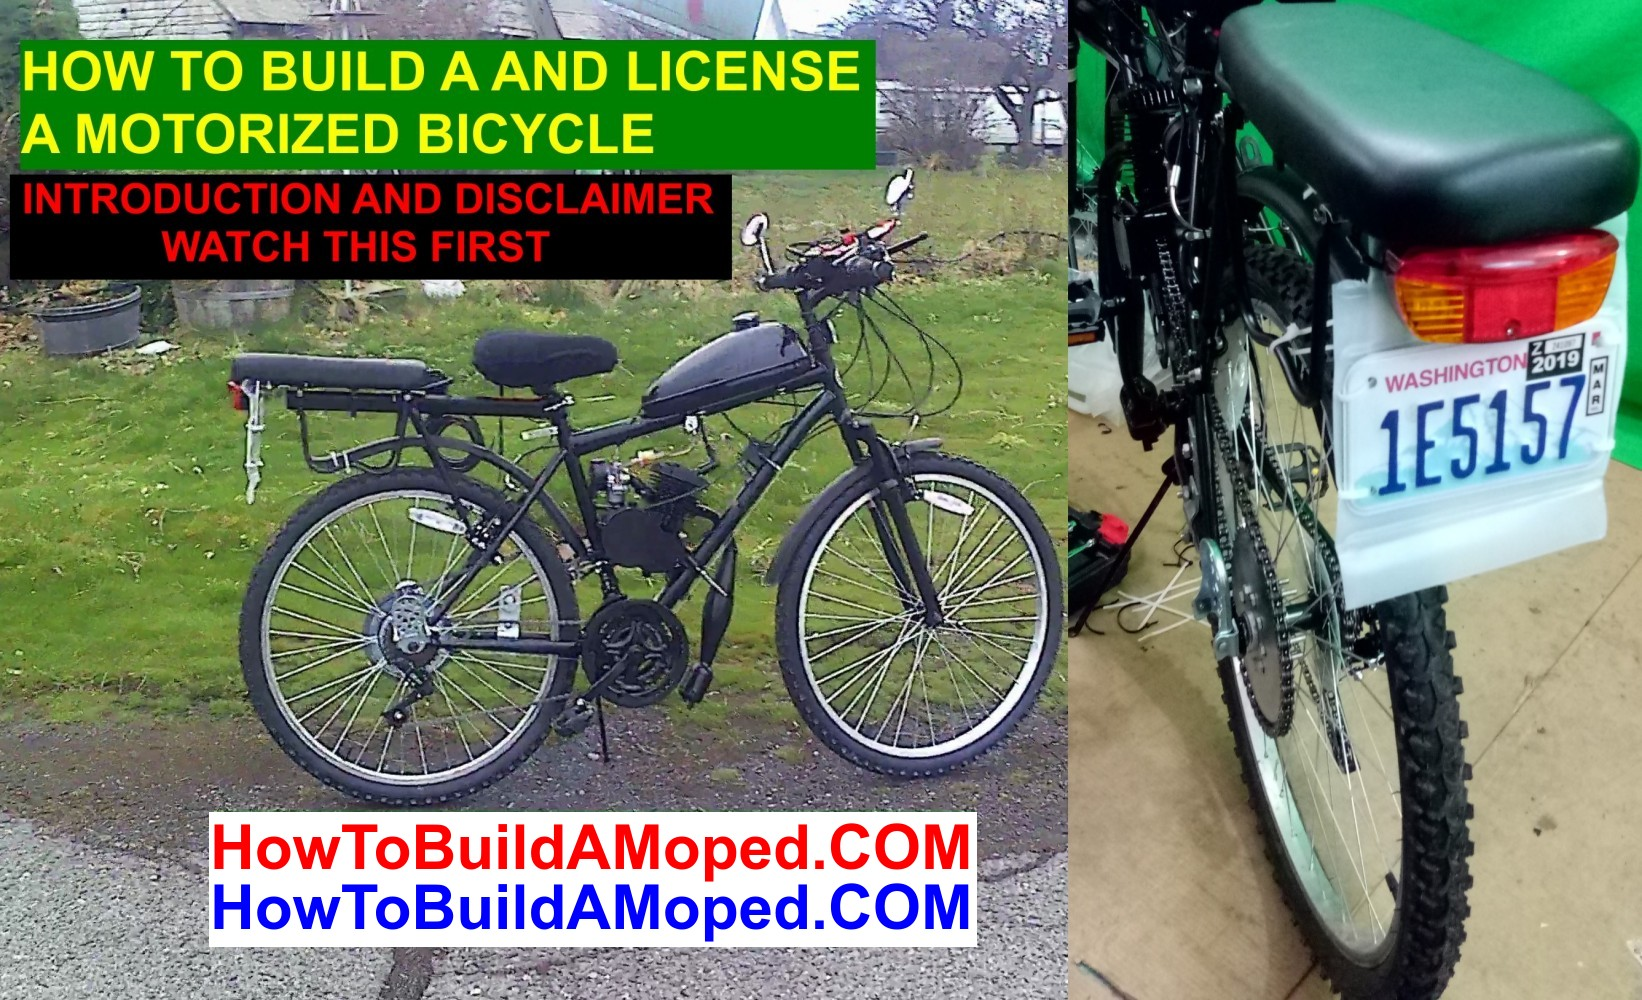 How To Build and License a Motorized Bike INTRODUCTION AND DISCLAIMER Part 0